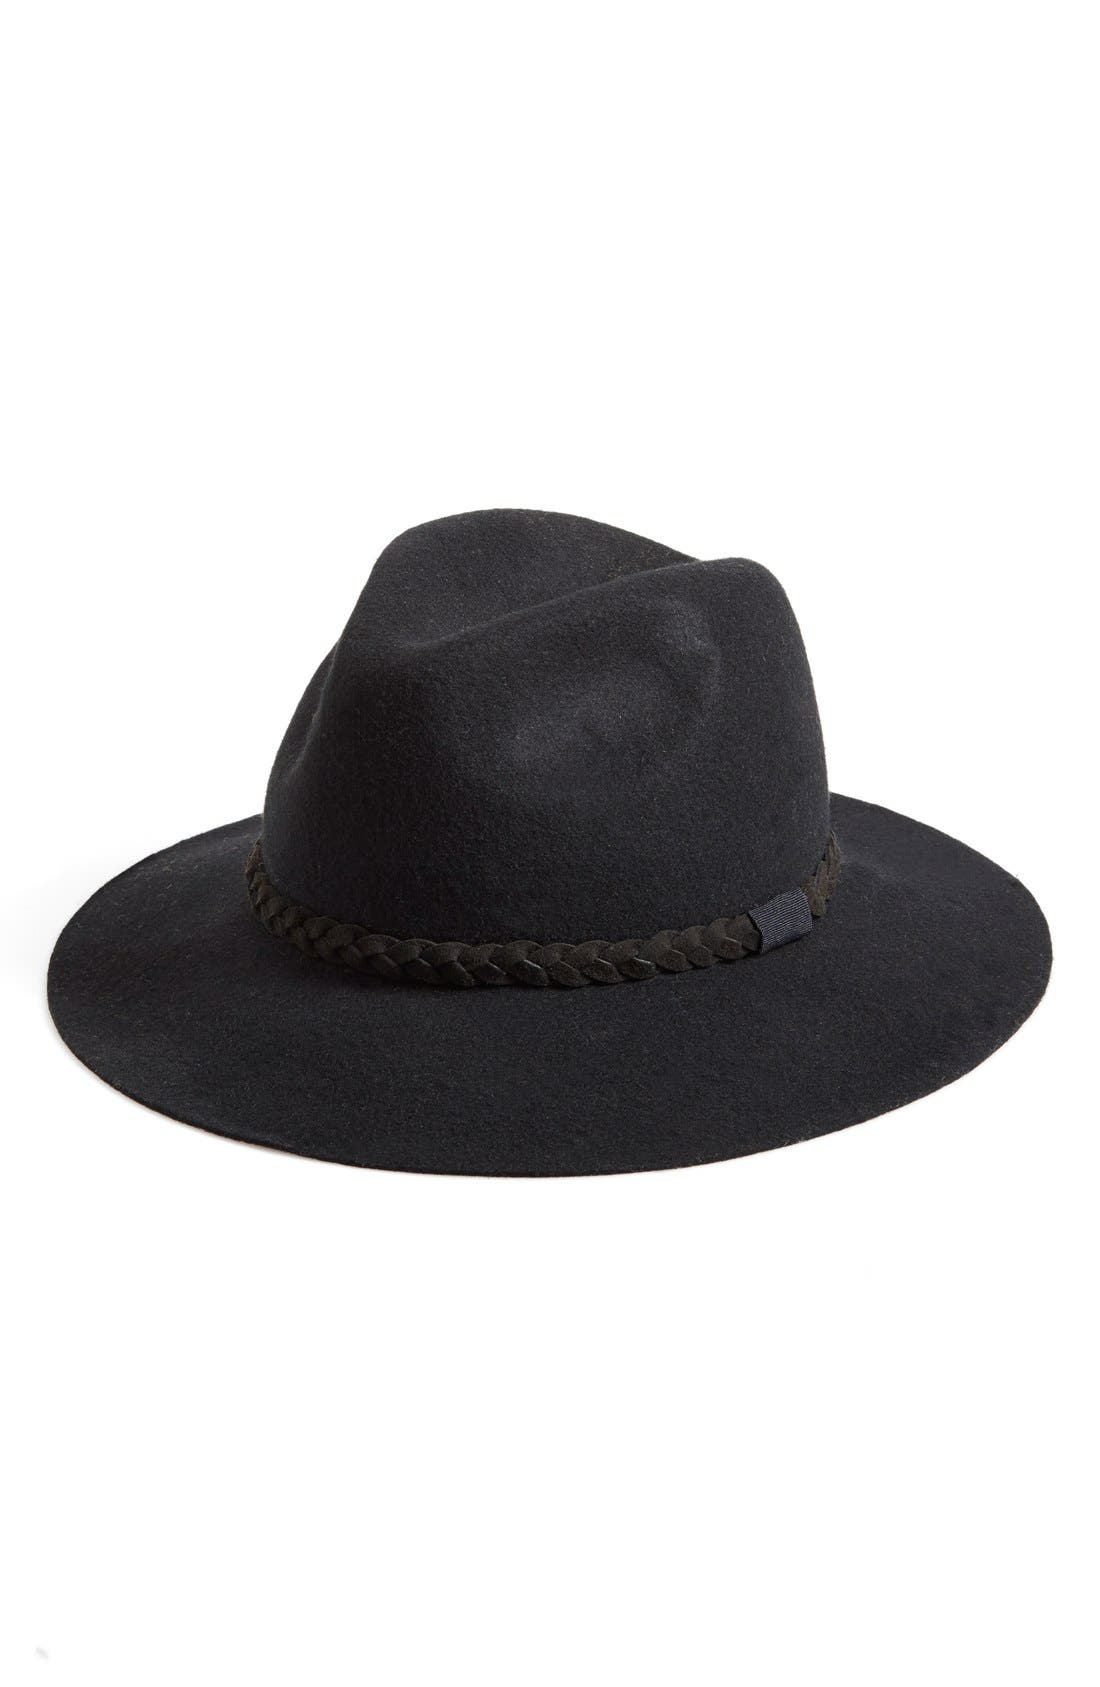 MICHAEL STARS 'She's Twisted' Wool Fedora, Main, color, 001